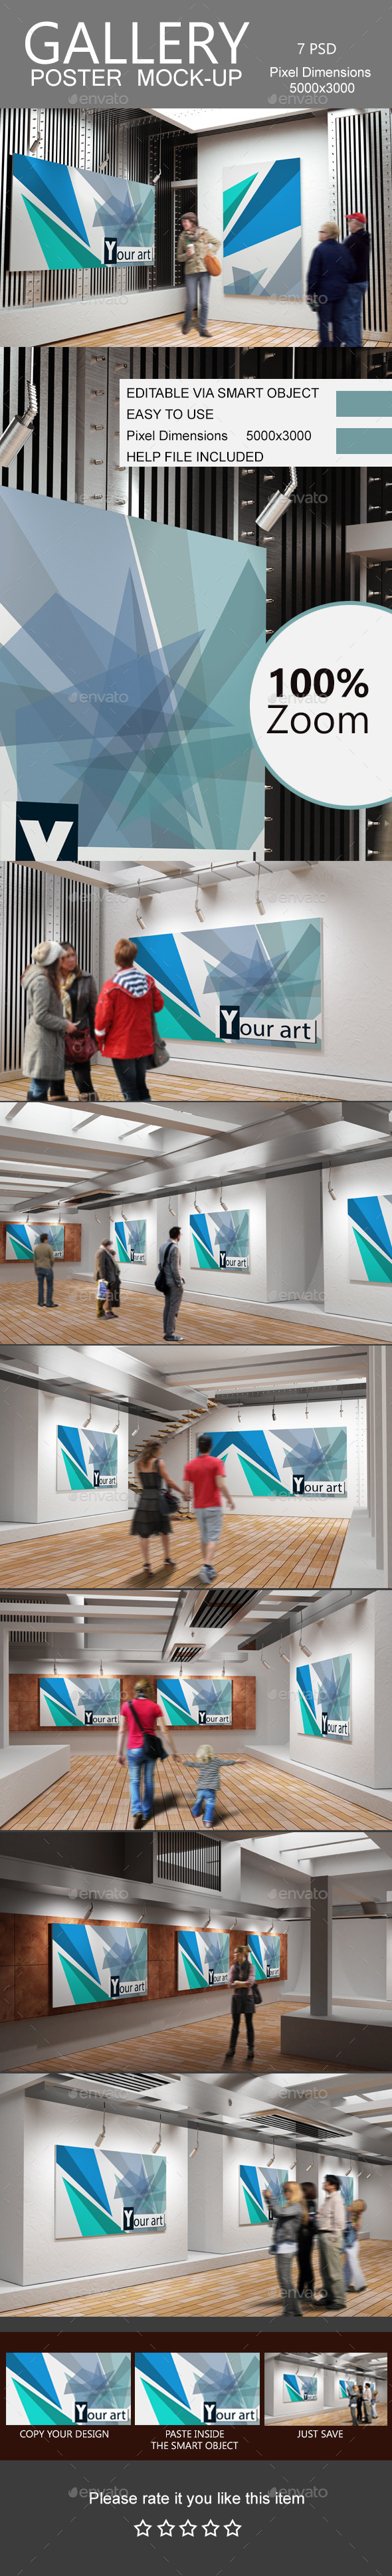 GraphicRiver Gallery Poster Mock-Up 2 11175638